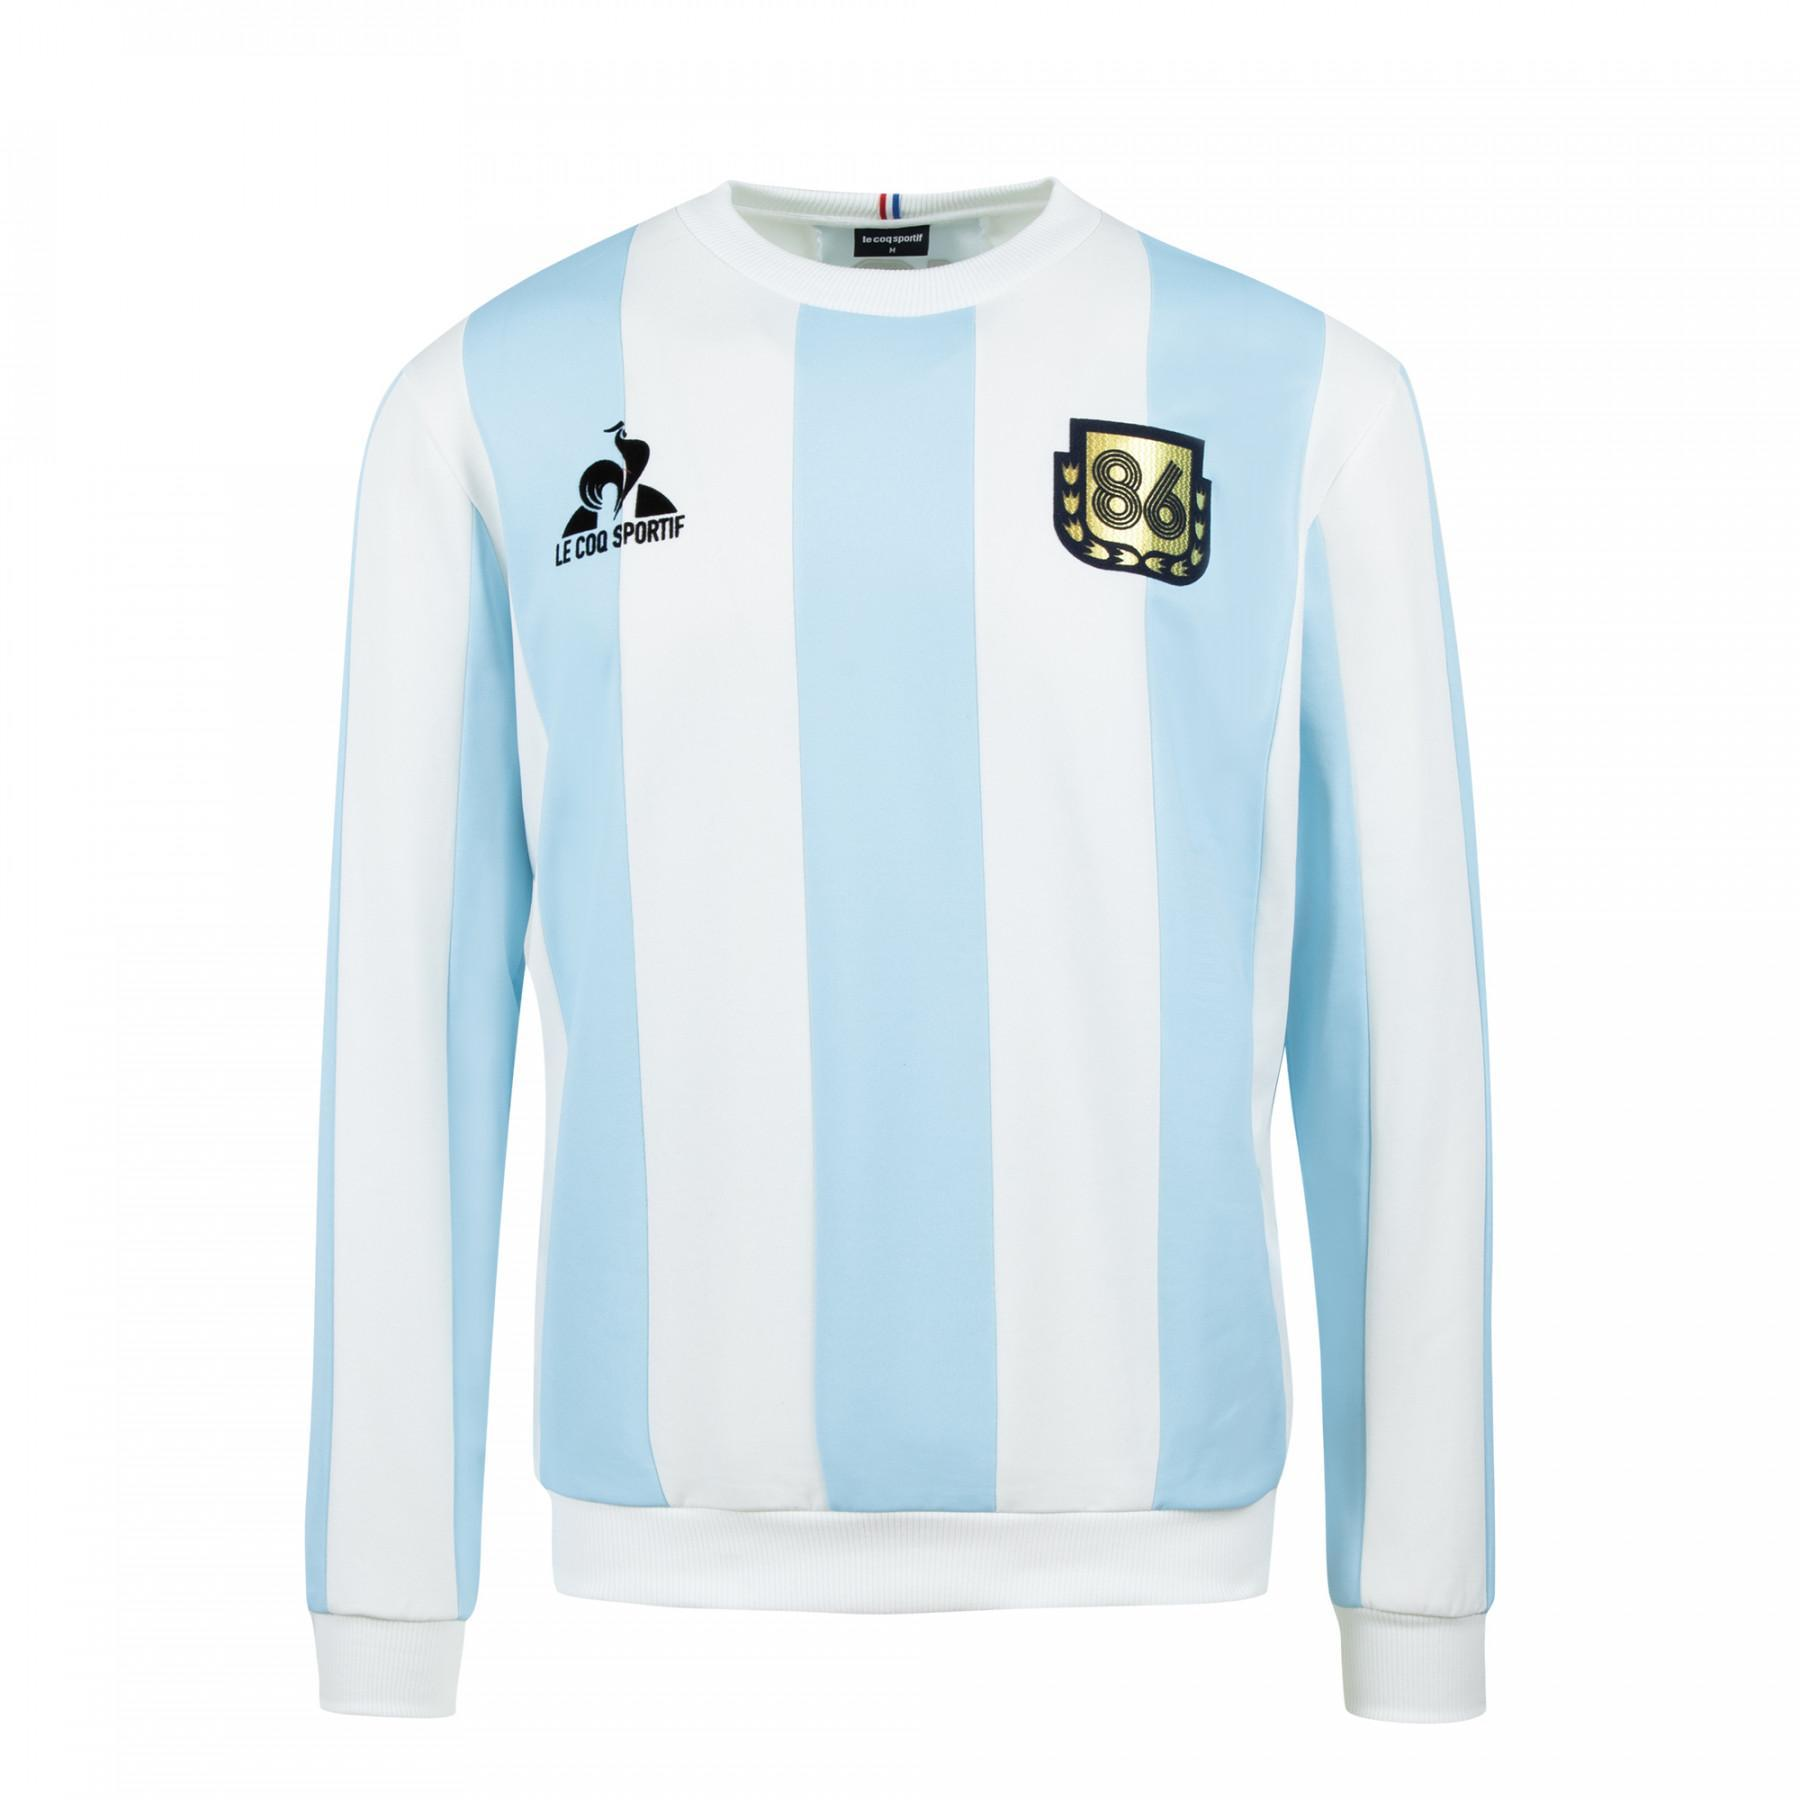 "Sweatshirt Le coq sportif retro Argentine 1986 Collection Legends ""Maradona"""